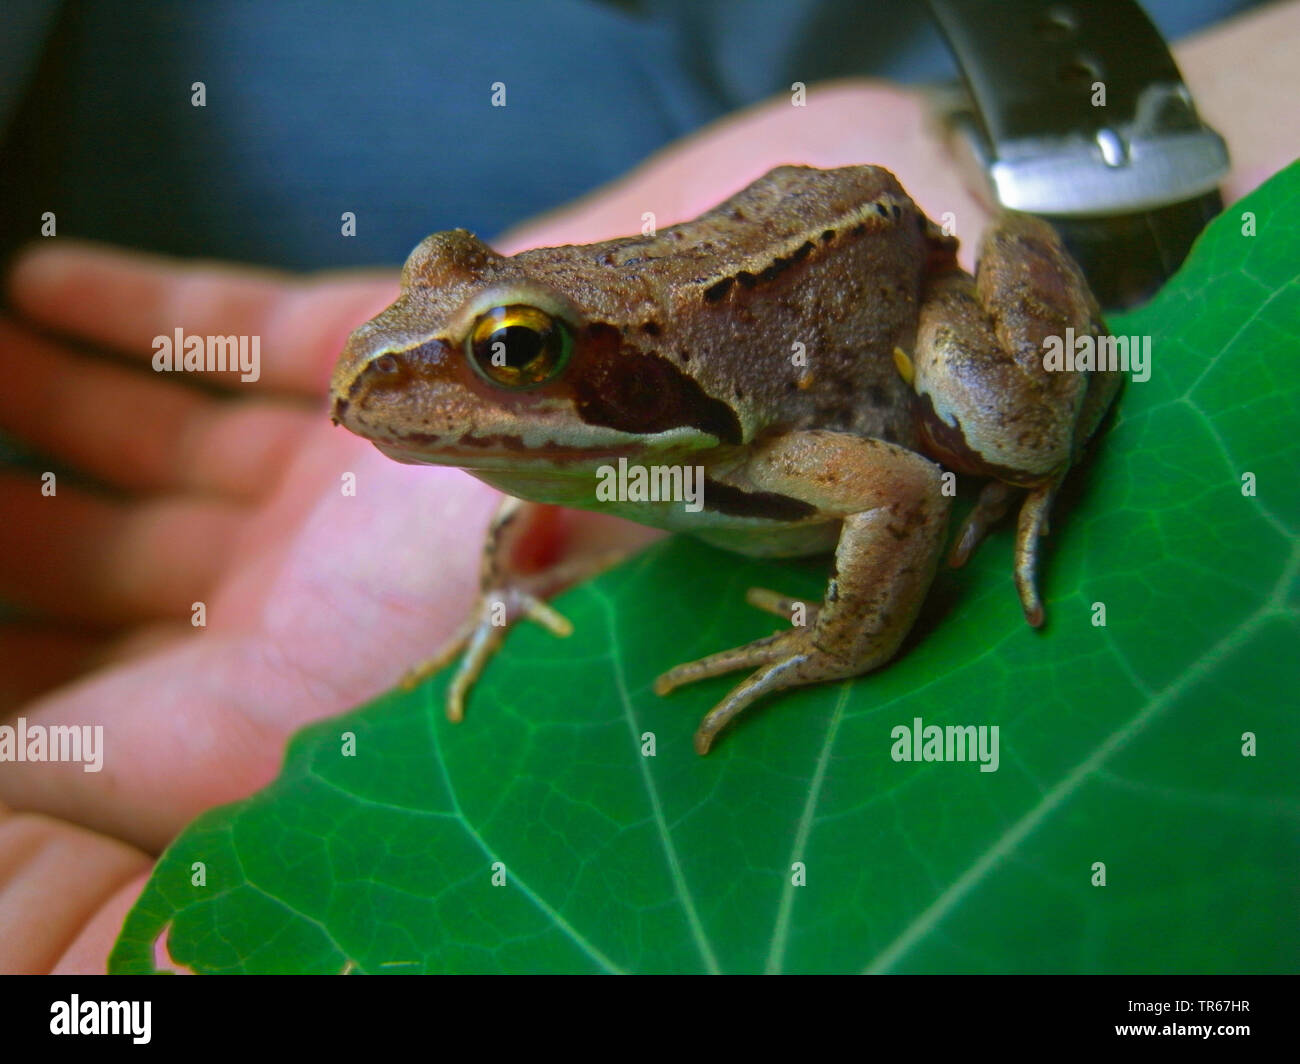 common frog, grass frog (Rana temporaria), on a hand, Germany - Stock Image